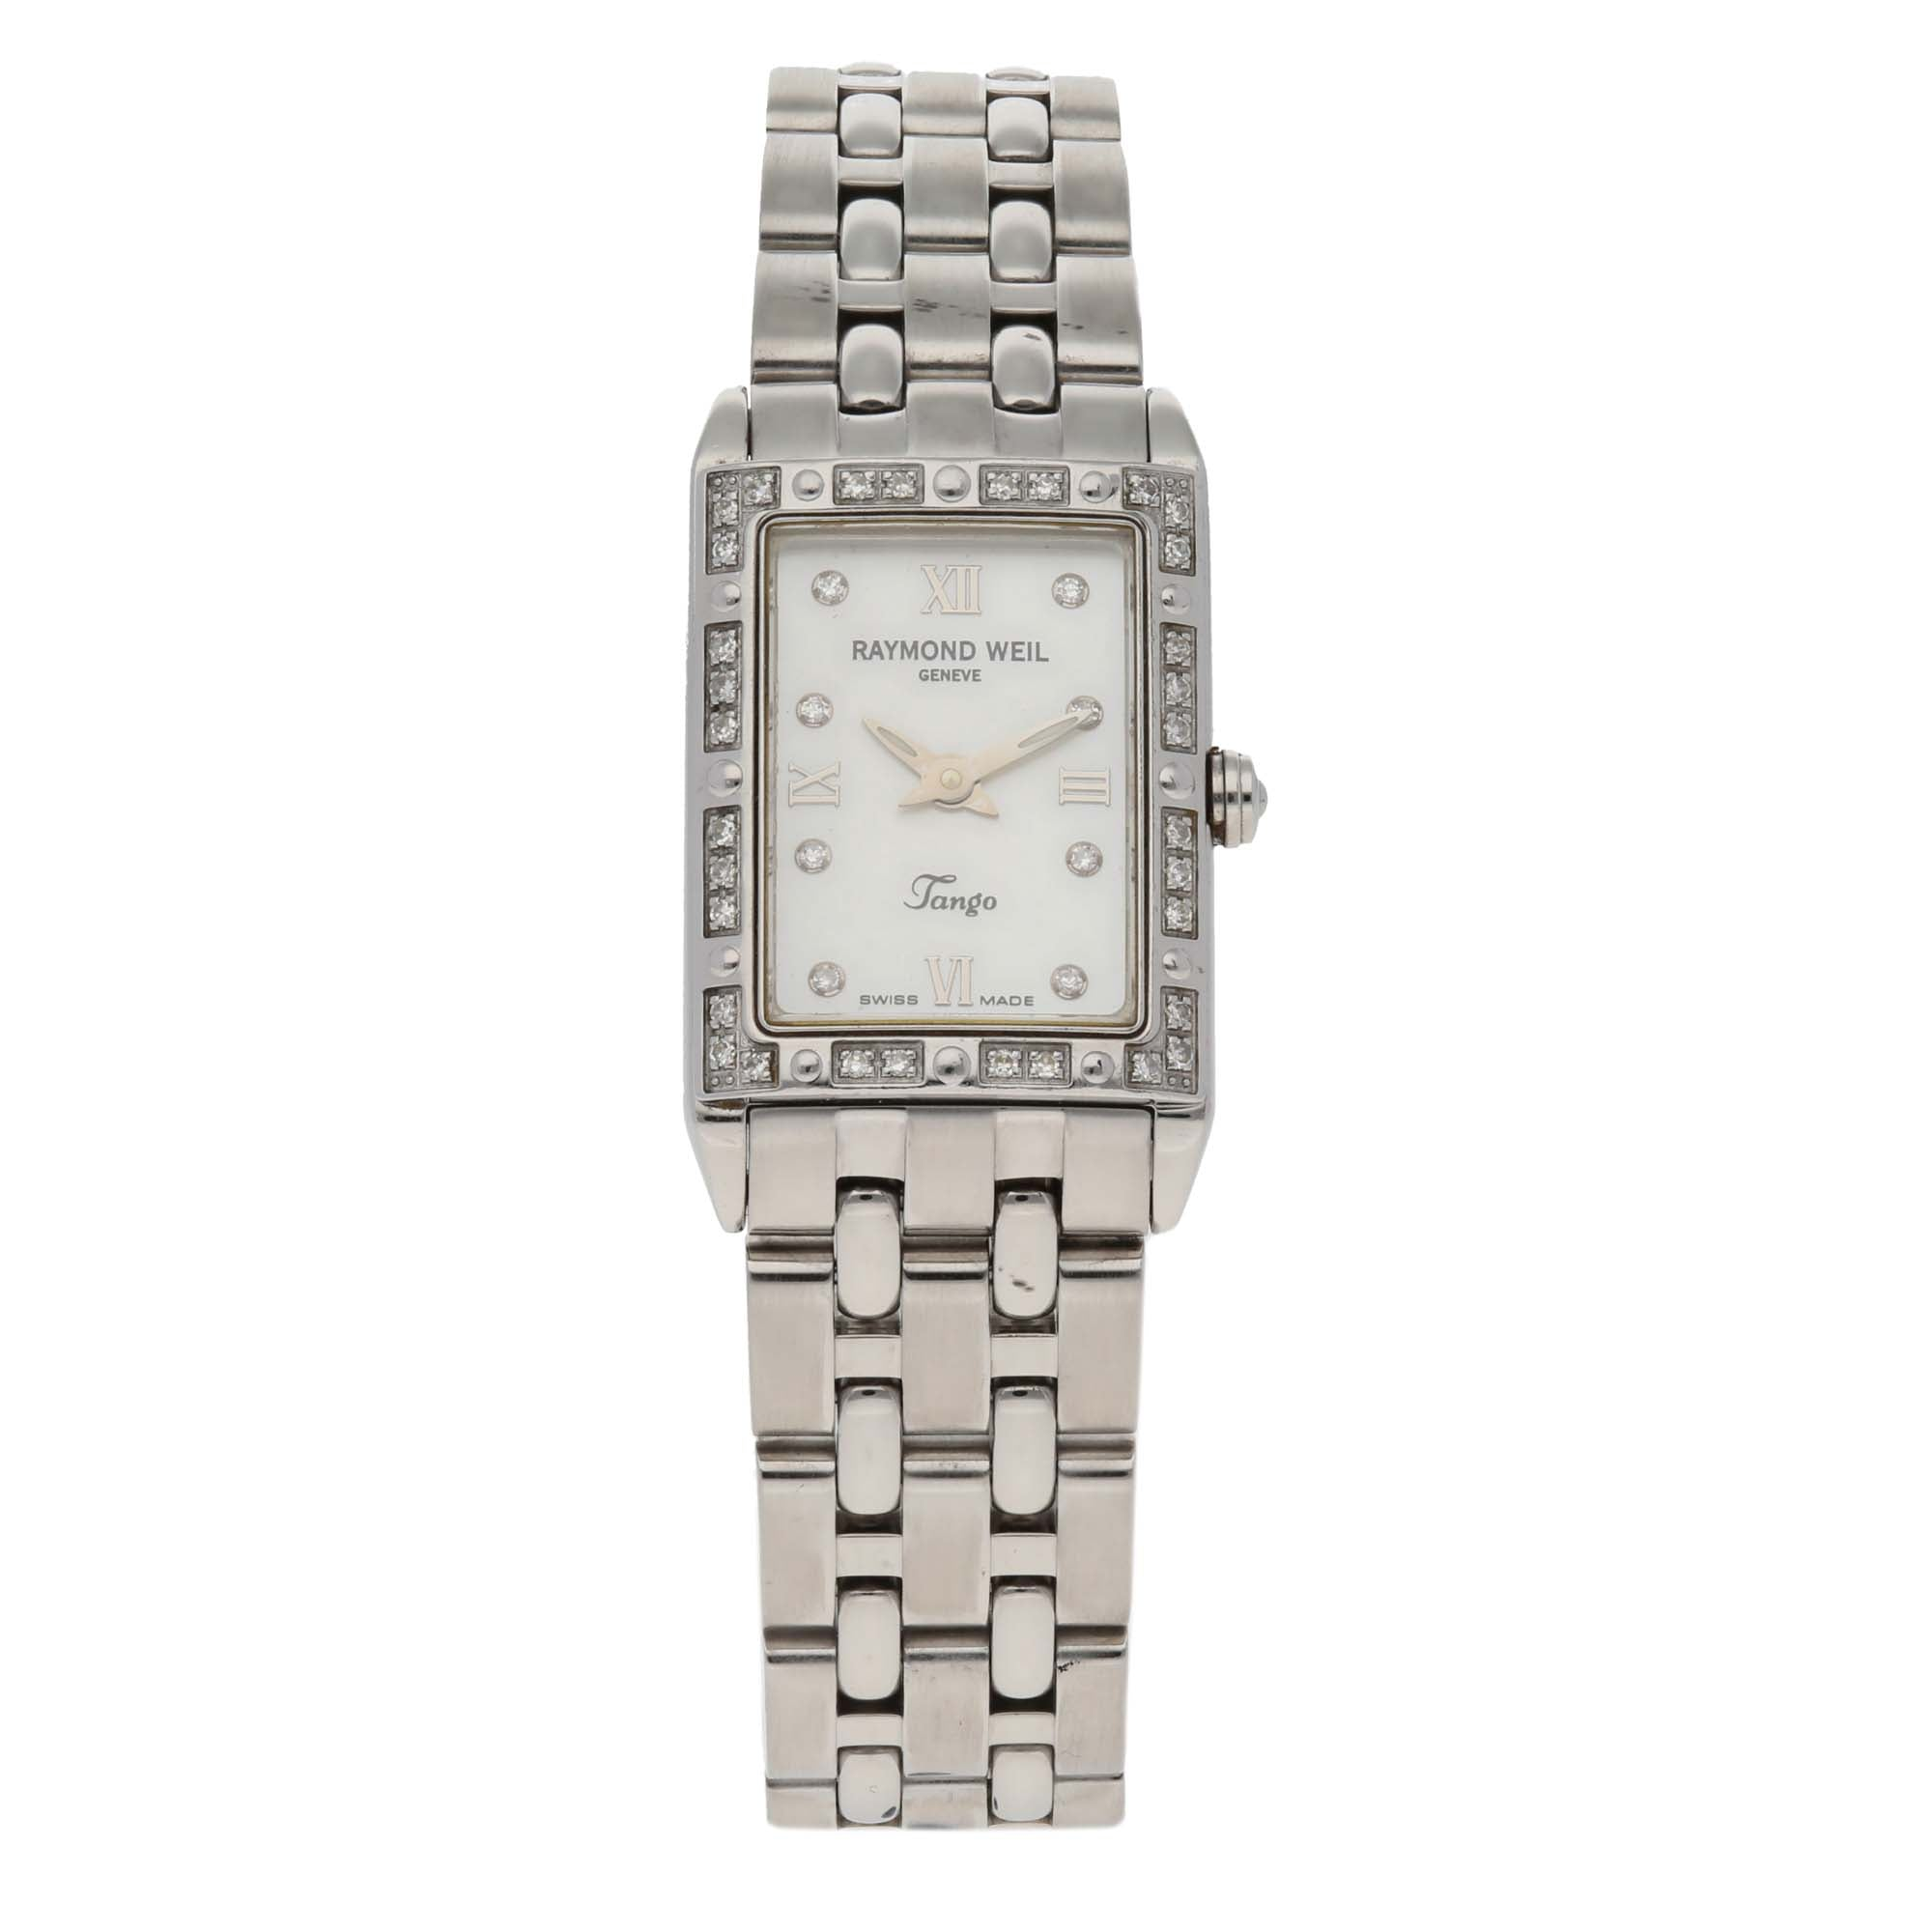 Raymond Weil Tango 5971 18.5mm Stainless Steel Ladies Watch